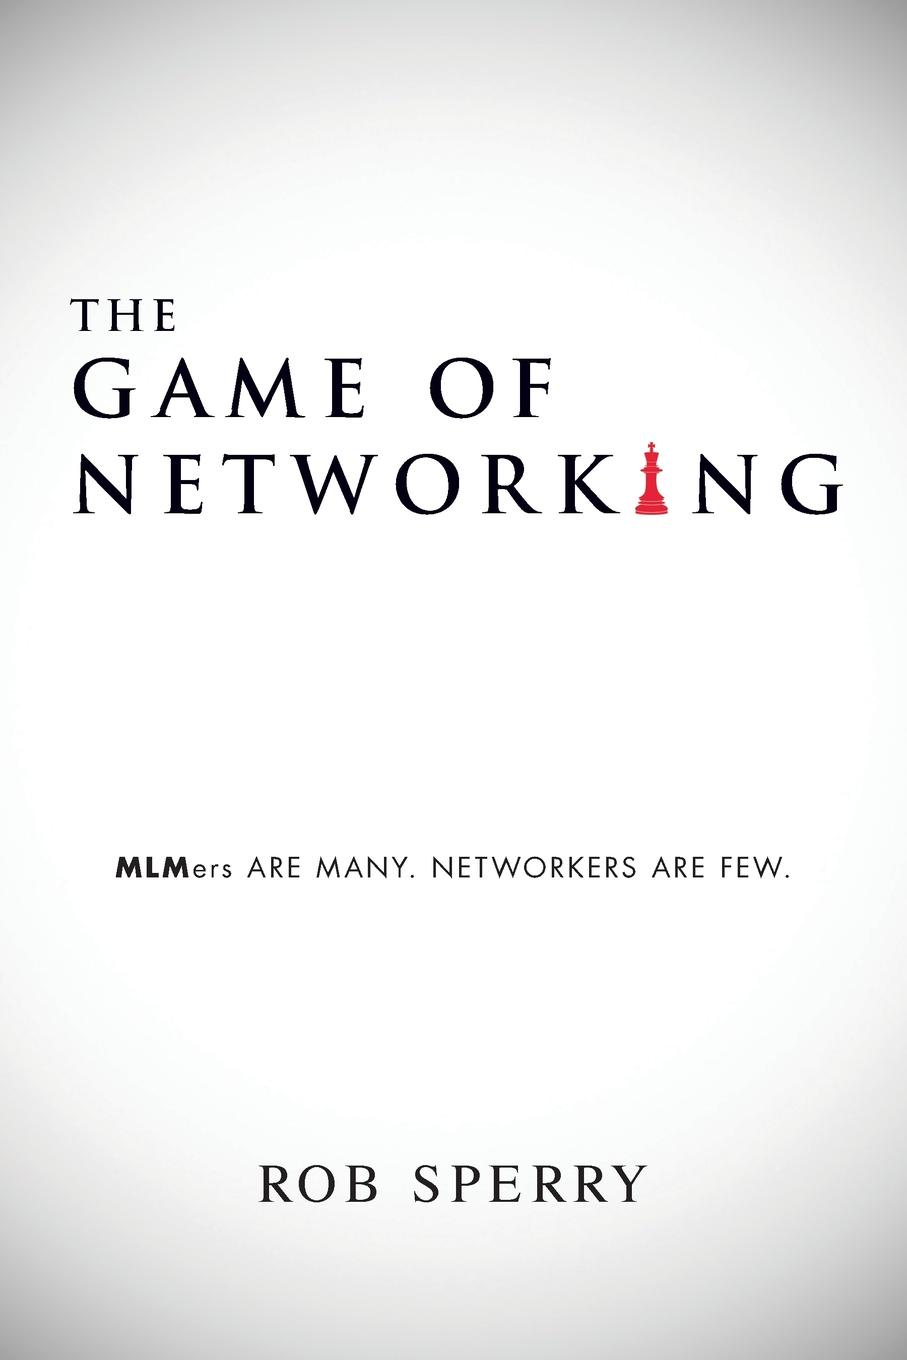 Rob Sperry The Game of Networking. MLMers ARE MANY. NETWORKERS ARE FEW. social networking